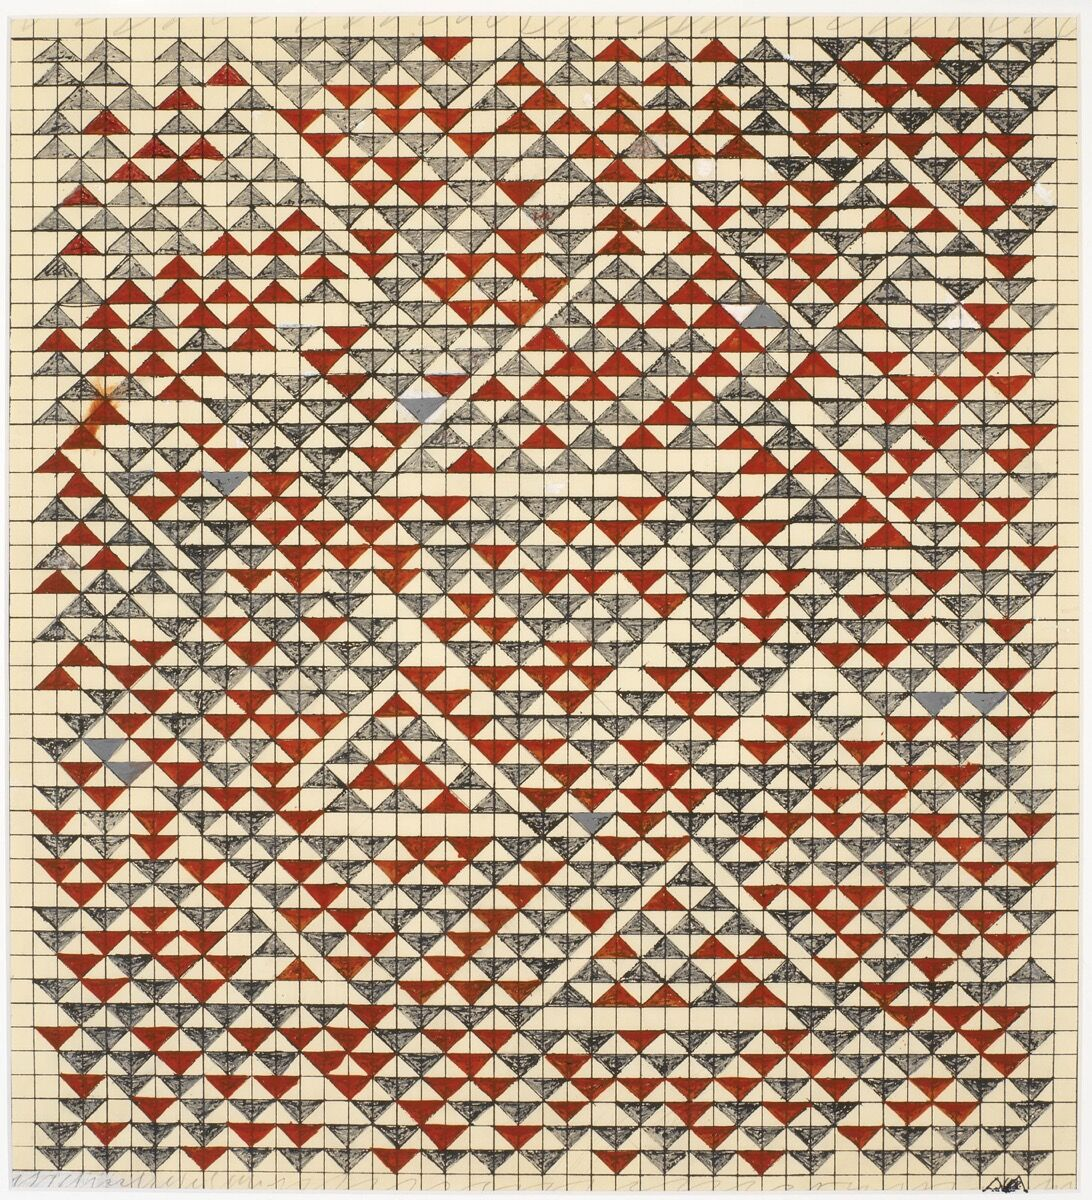 Anni Albers, Study for Camino Real, 1967. © The Josef and Anni Albers Foundation / Artists Rights Society (ARS), New York 2019. Photo by Tim Nighswander / Imaging4Art. Courtesy of The Art Institute of Chicago.